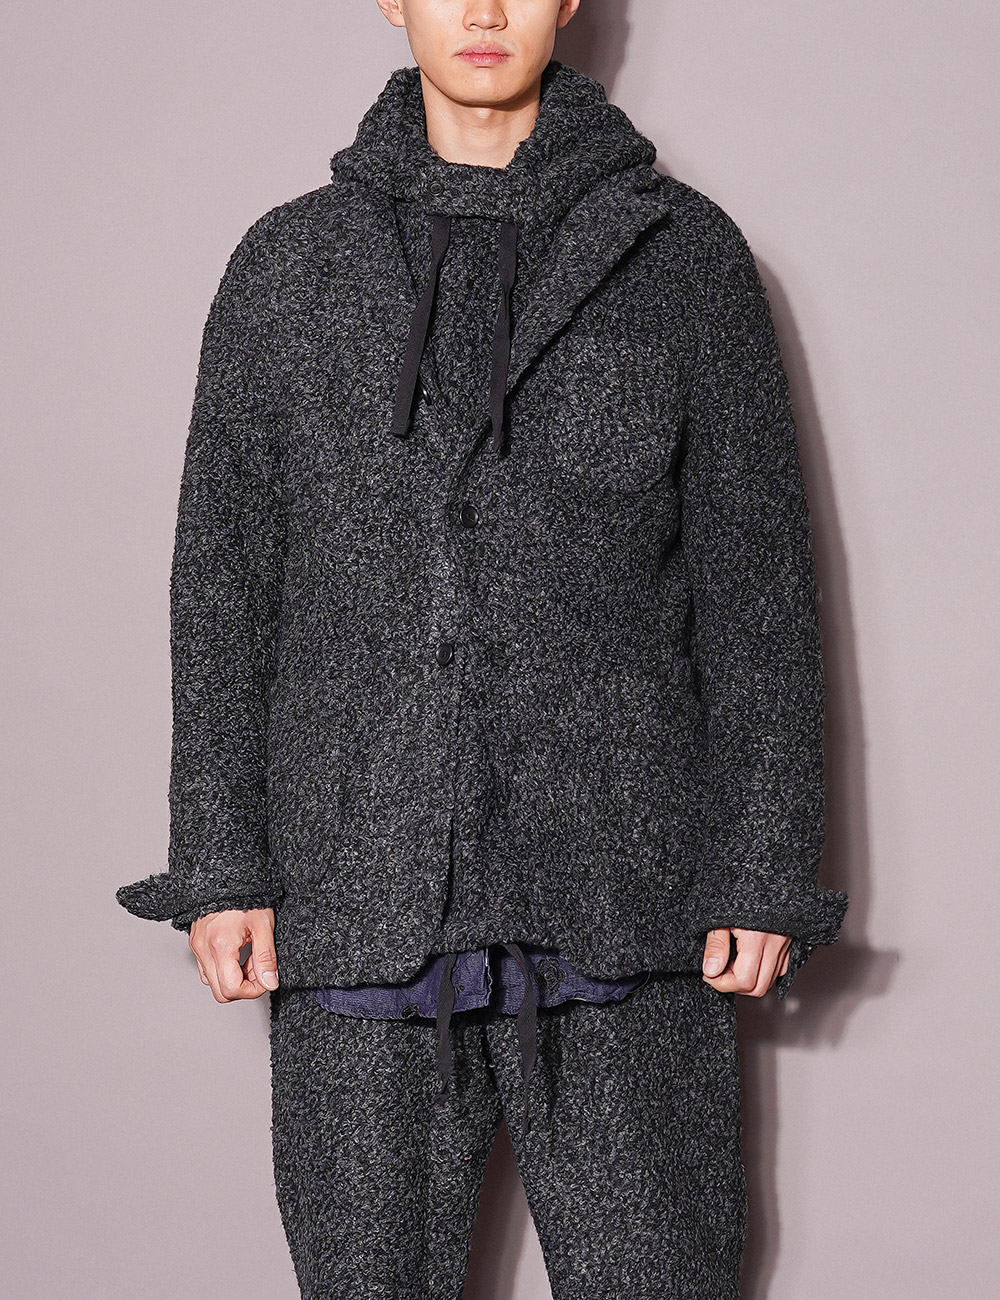 Engineered Garments : KNIT JACKET (CHARCOAL)